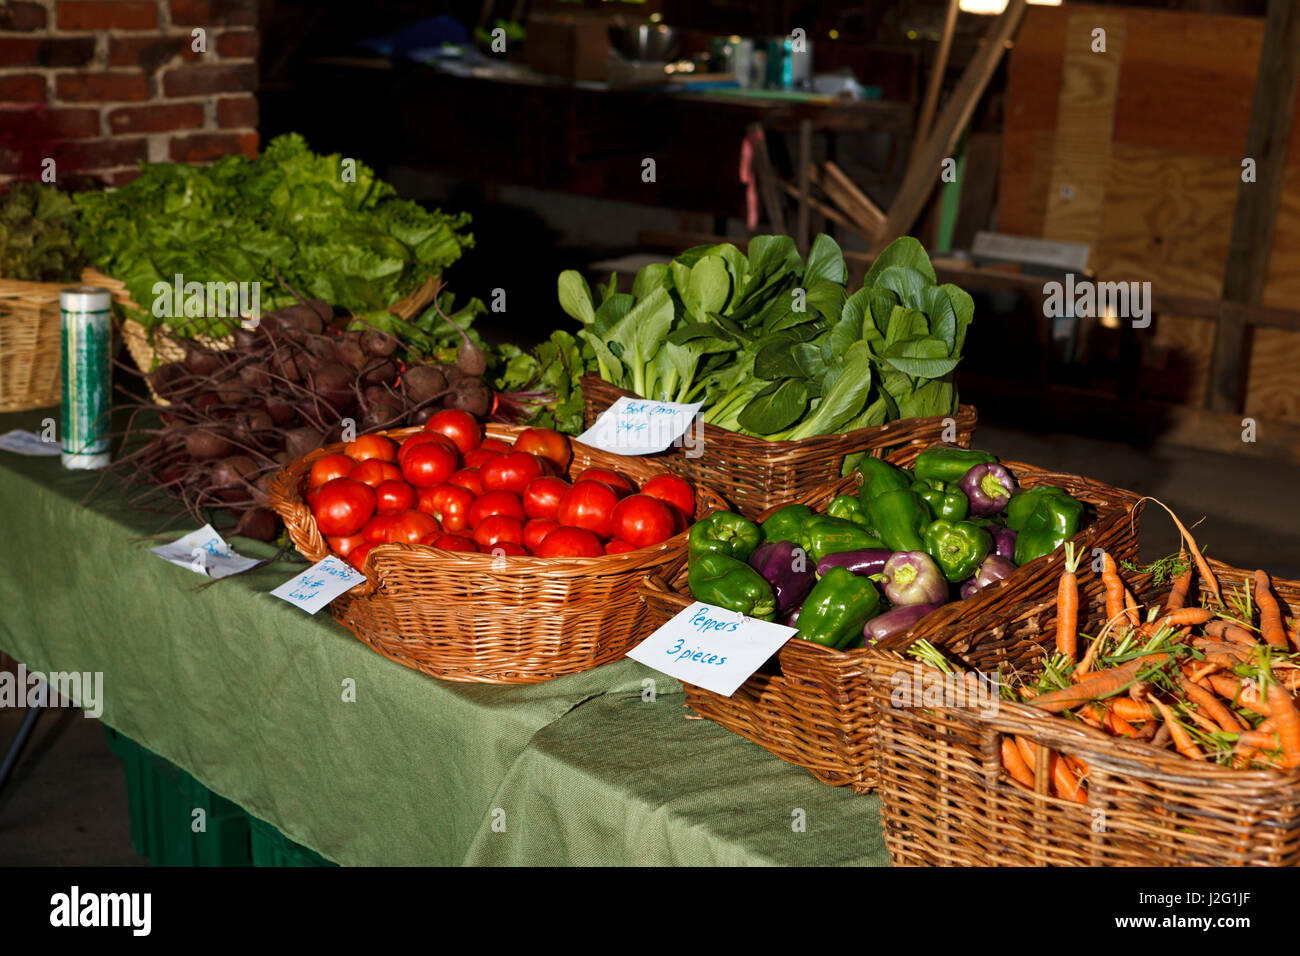 The Community Supported Agriculture (CSA) pick-up at the